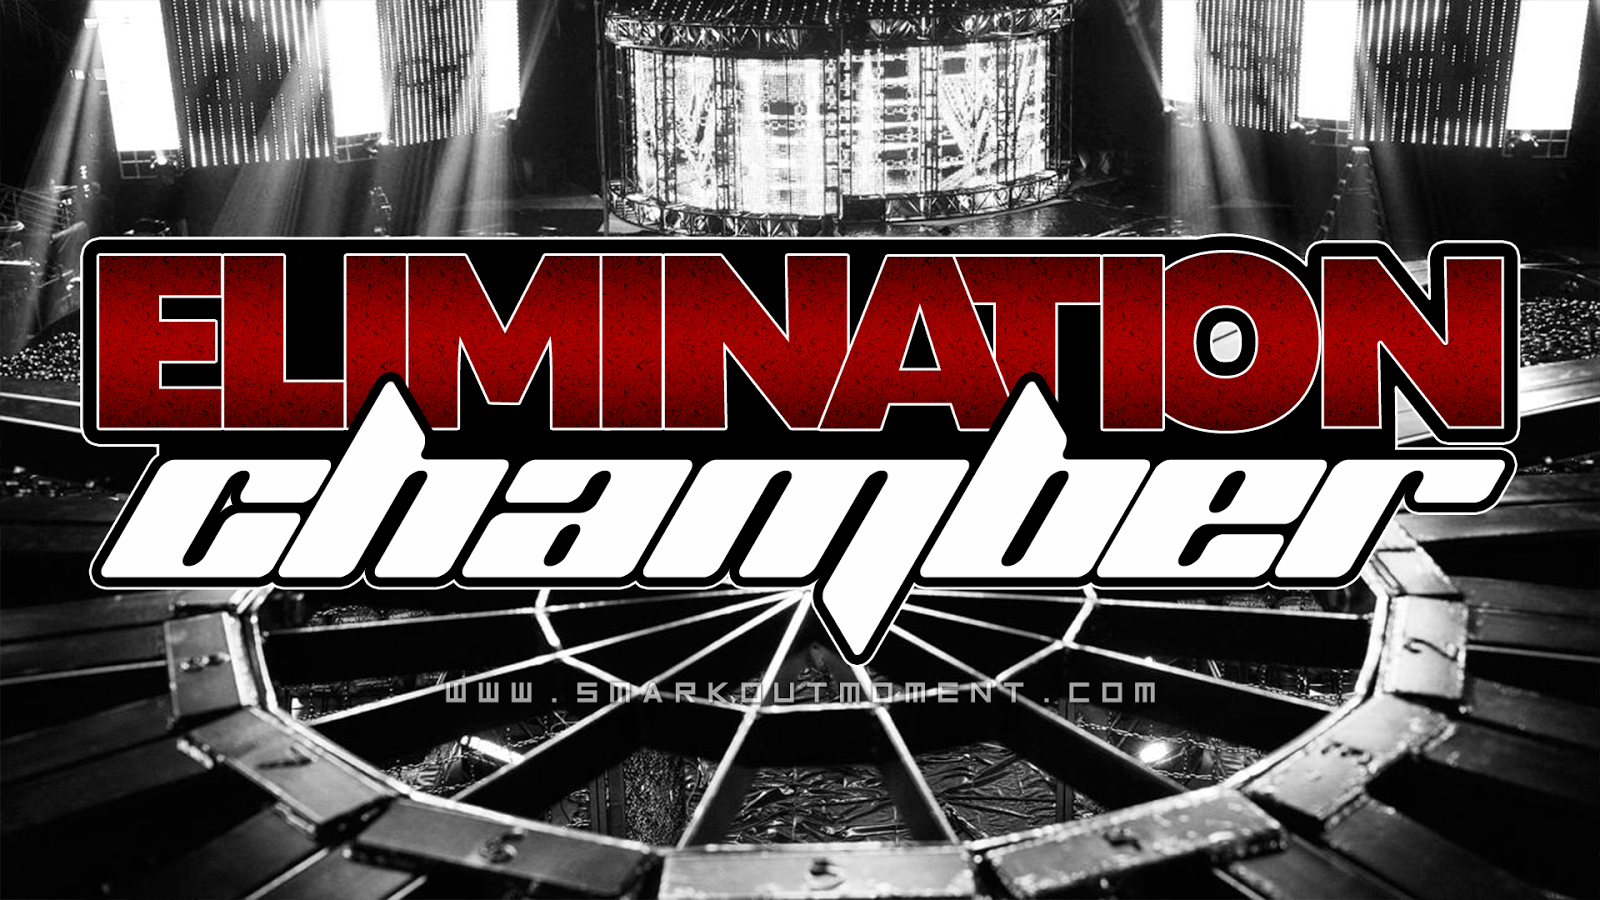 WWE Elimination Chamber PPV Wallpaper Posters and Logo 1600x900